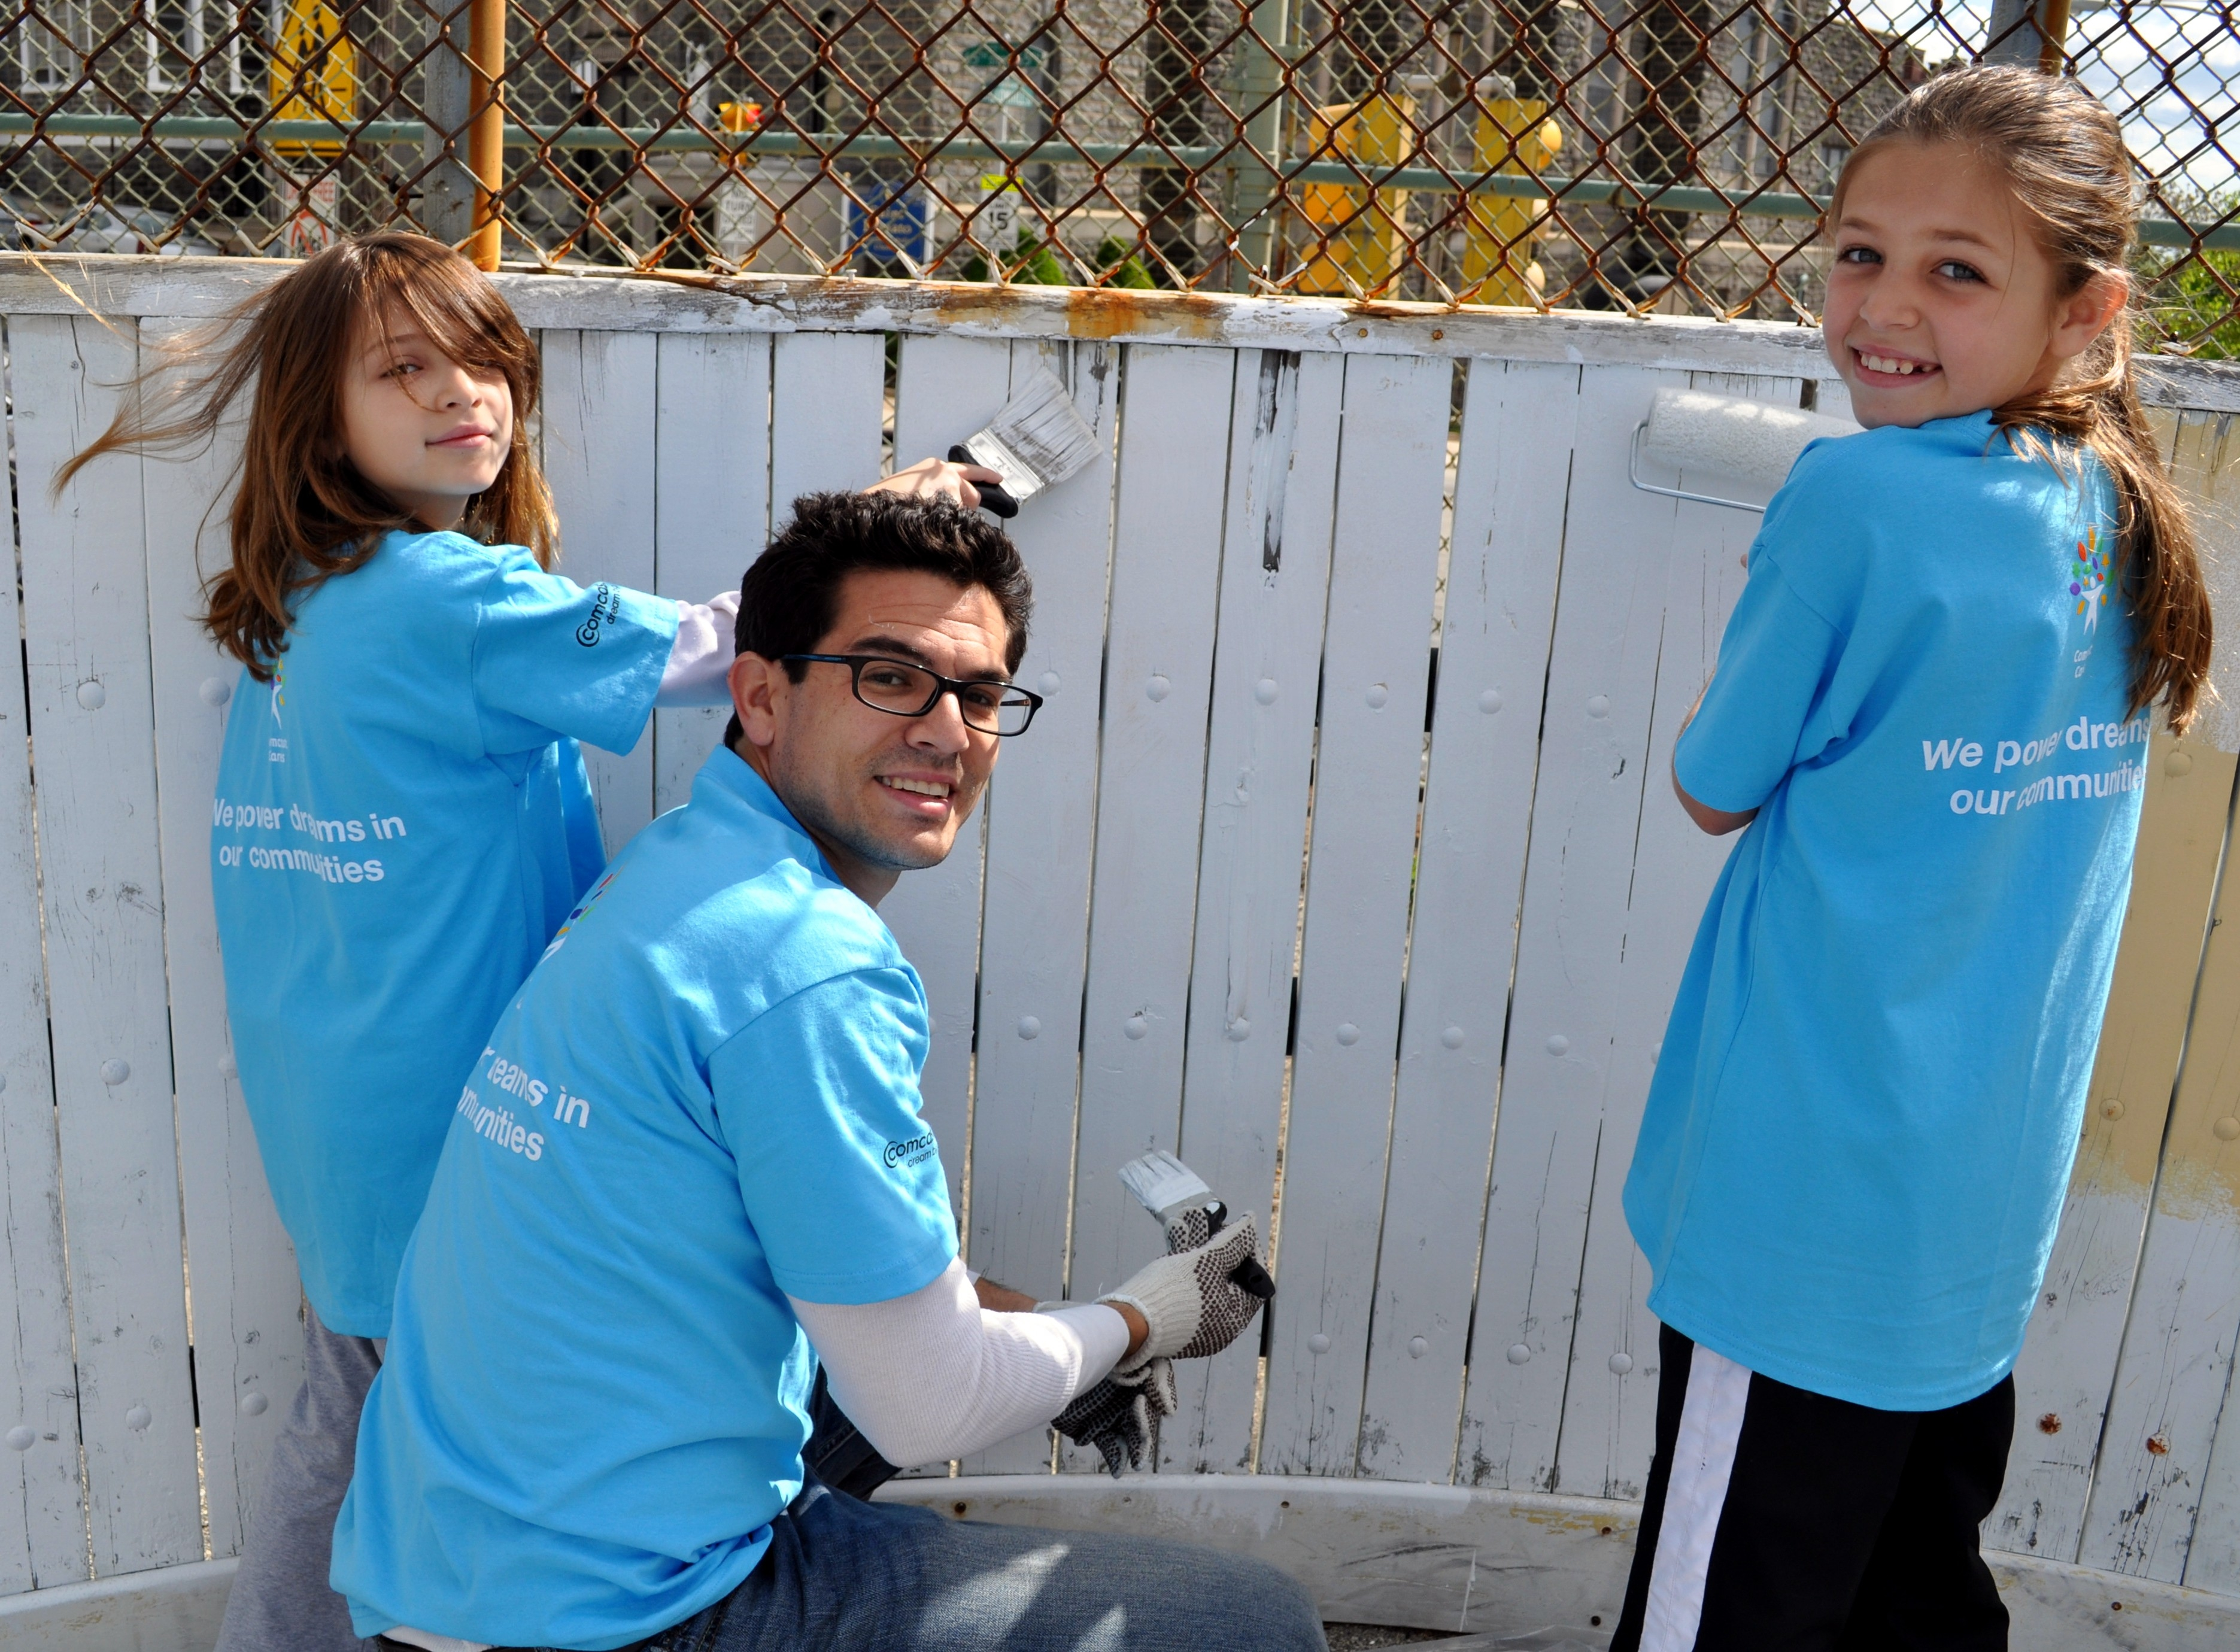 Comcast employee Joshua Palau and his daughters Logan (L) and Zoe (R) paint a fence at the Granahan Recreation Center in West Ph